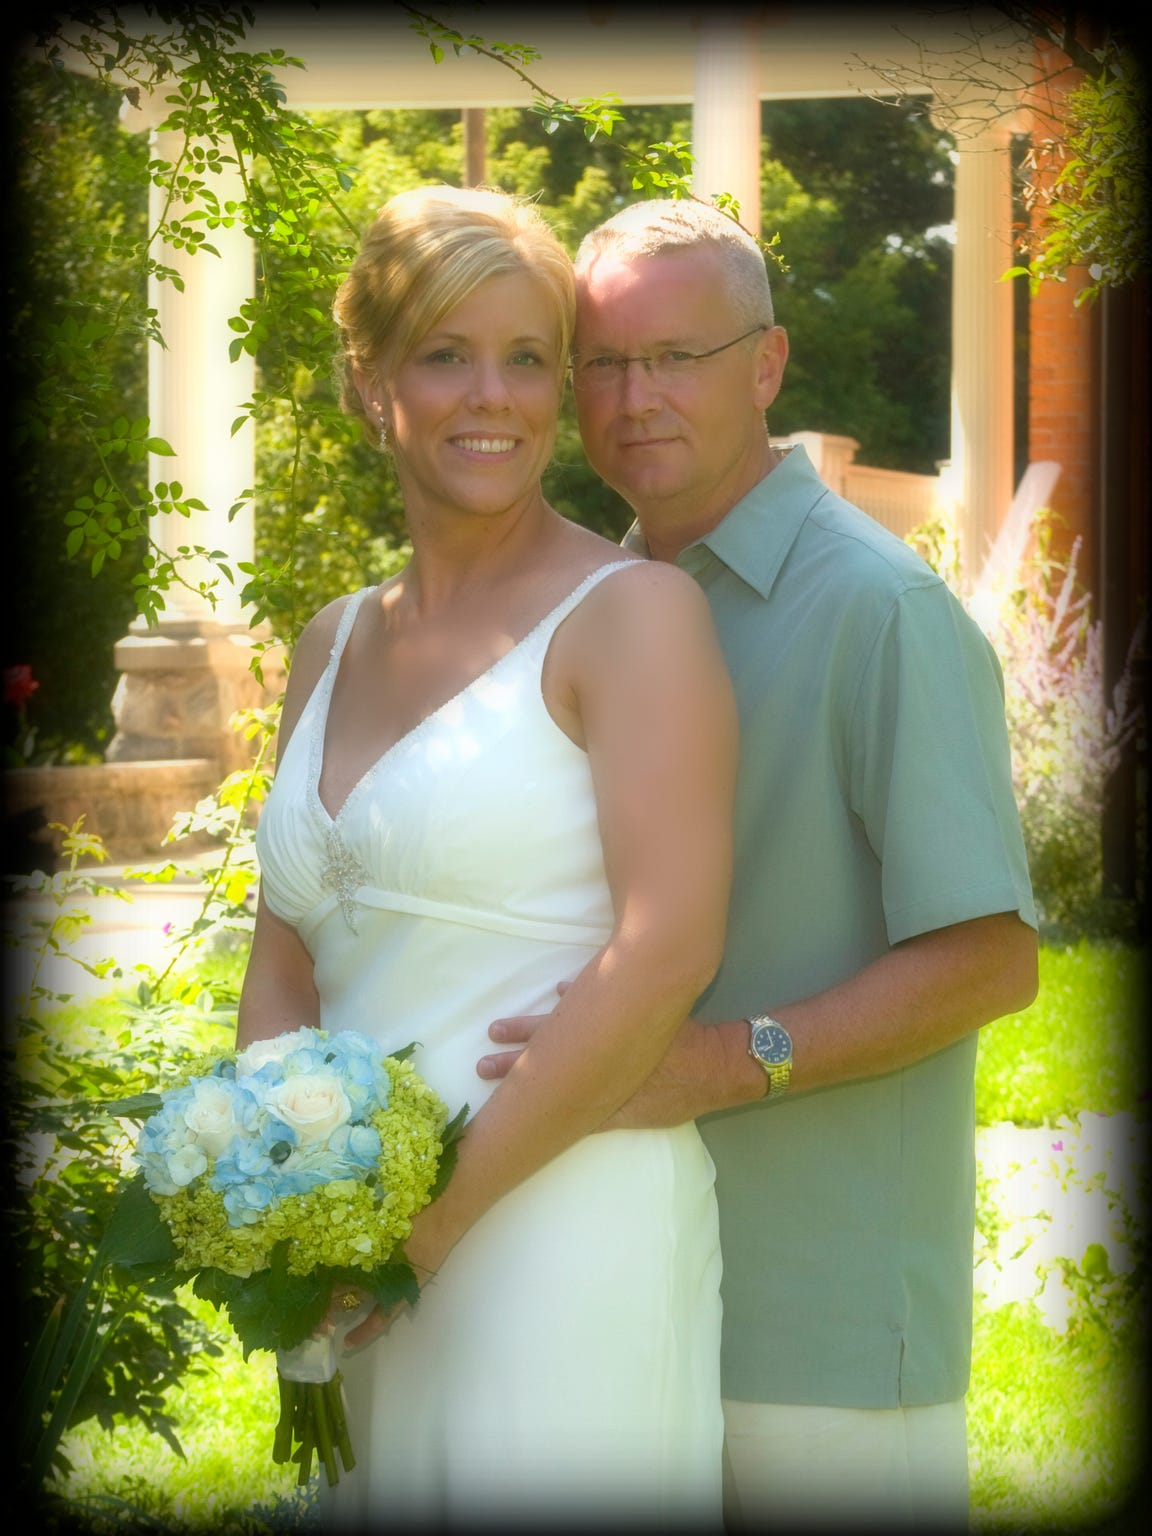 Teresa and Rod Sadler married in 2008. A photo from